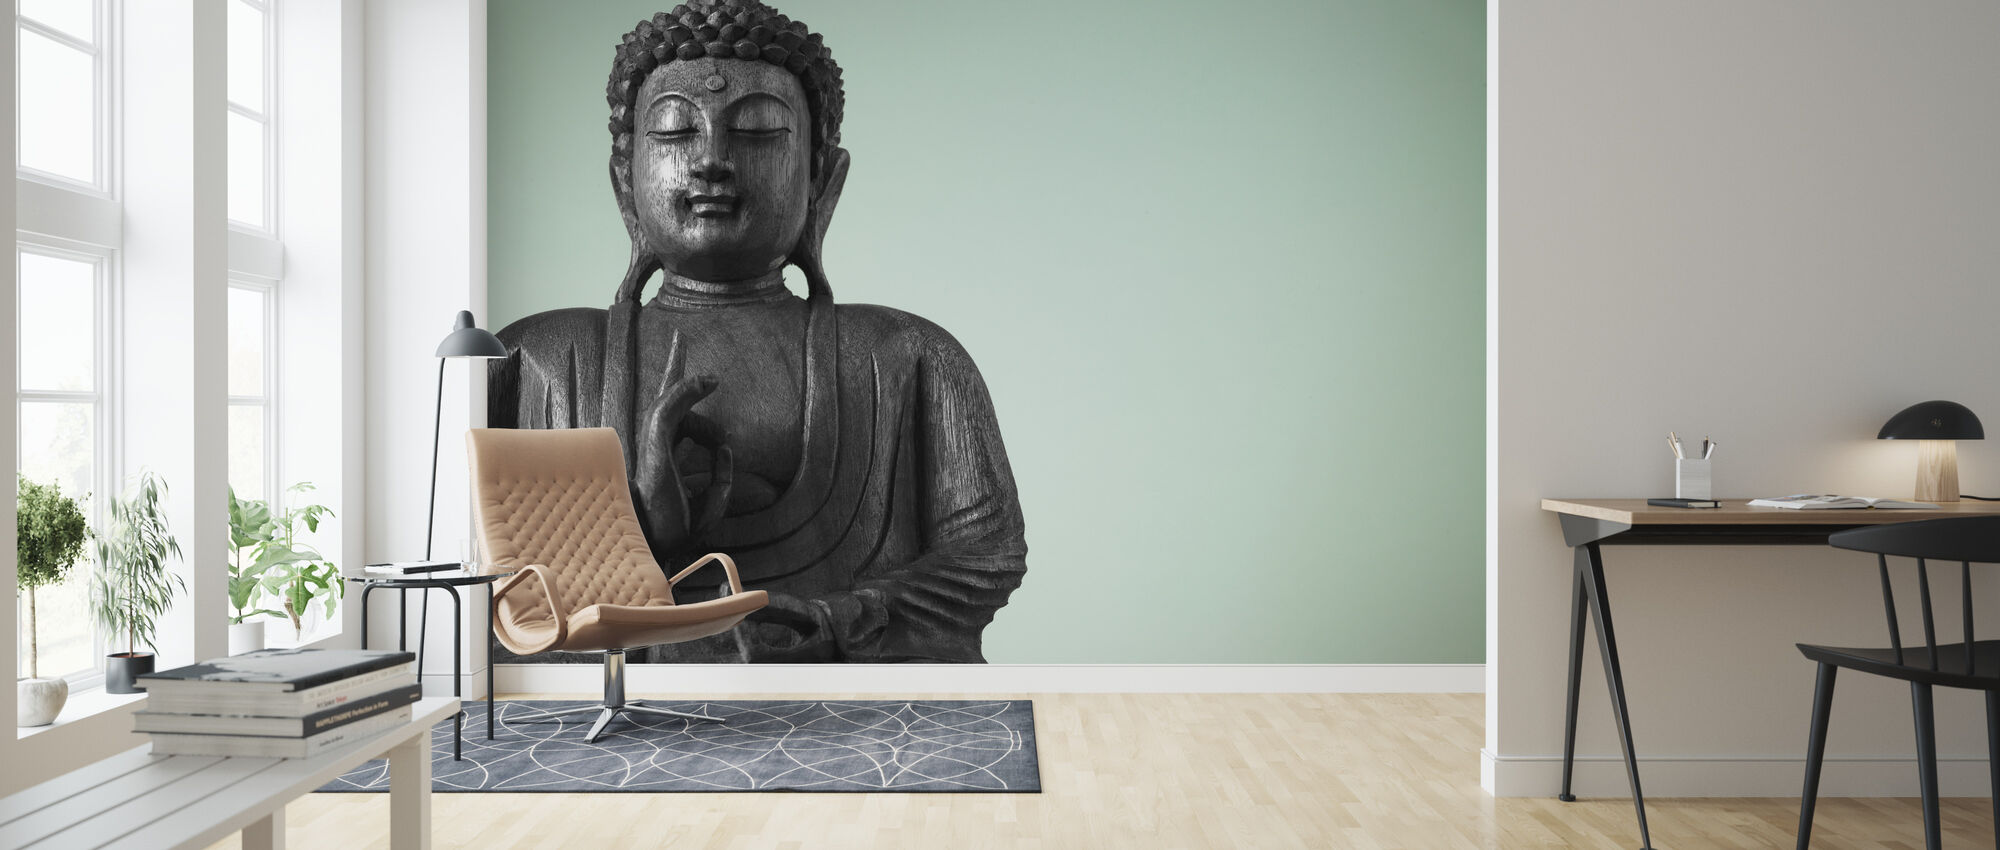 Buddha - Wallpaper - Living Room